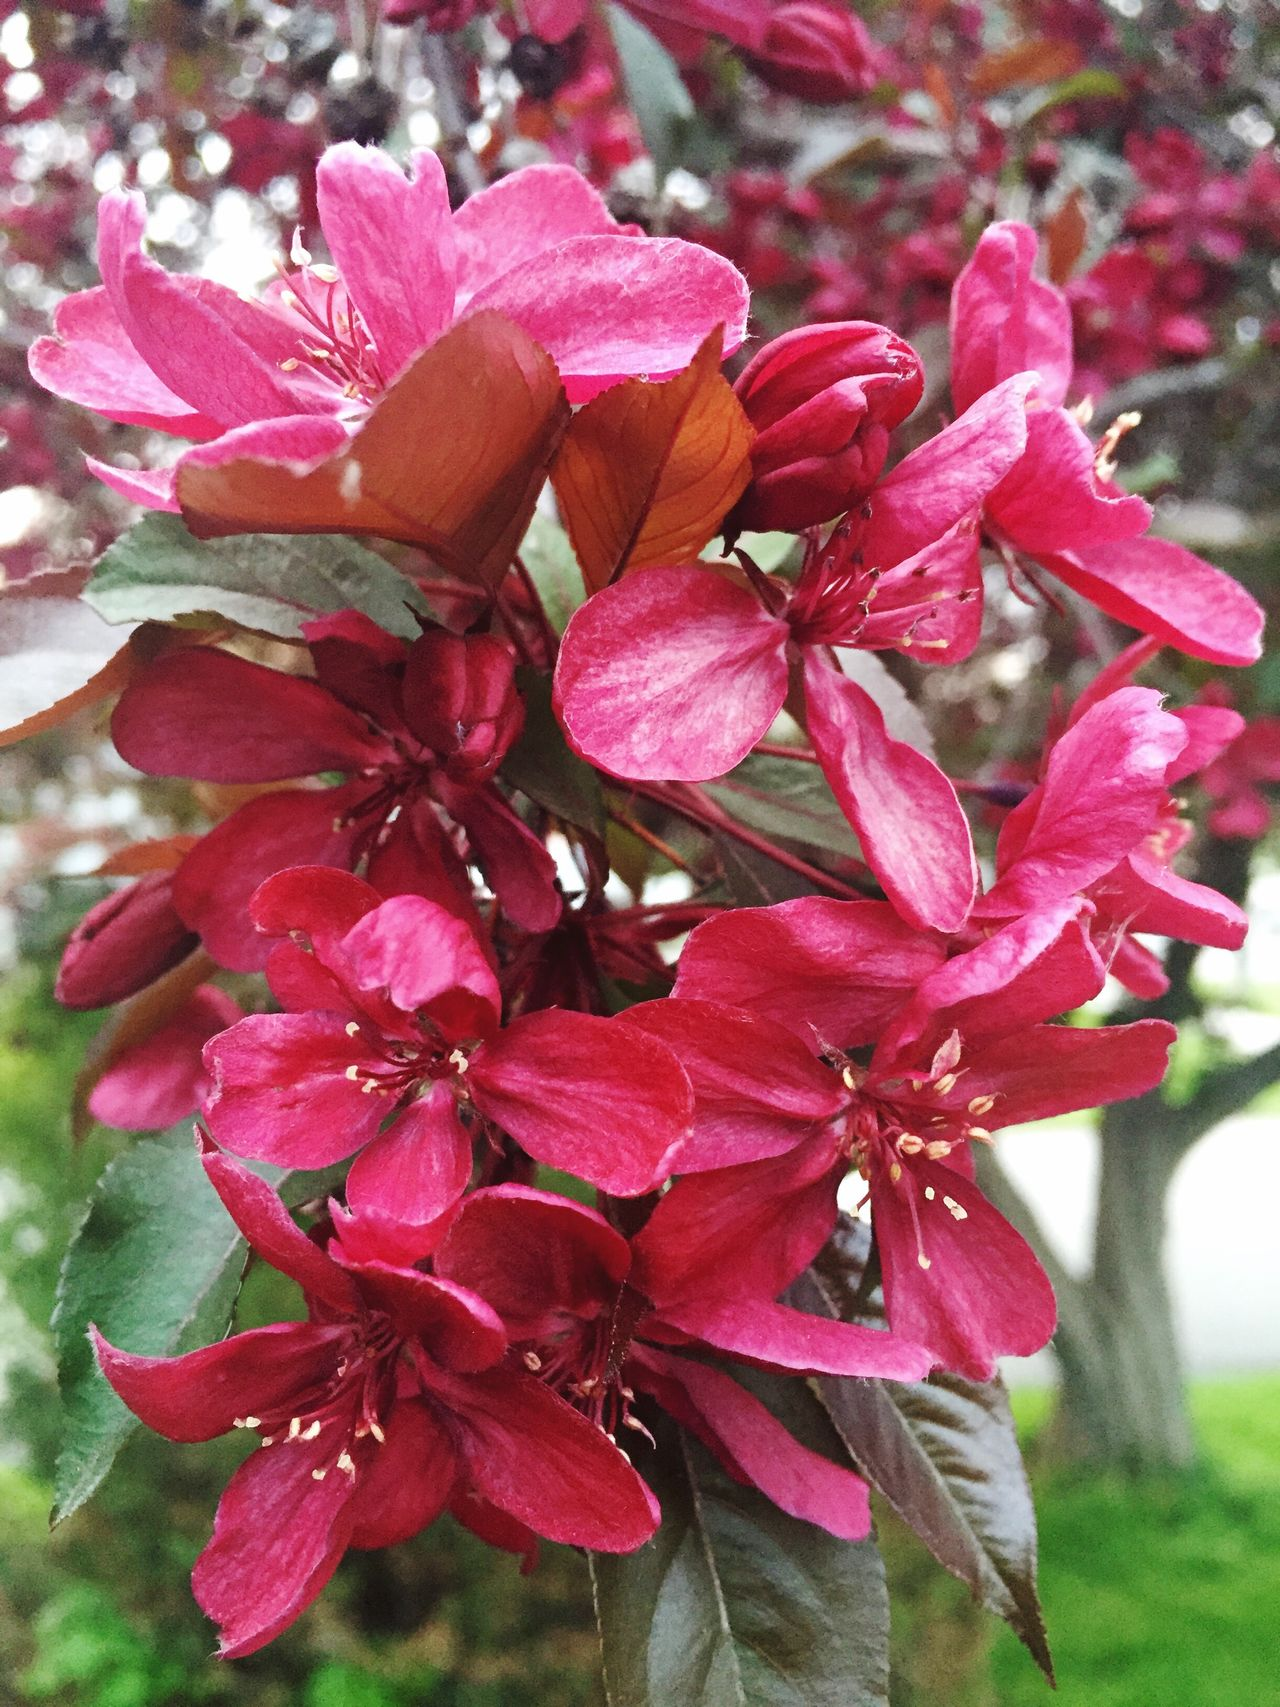 Red flowers Flowers tree flowers Spring Day summer Growing nature Life grow Outside outside photography